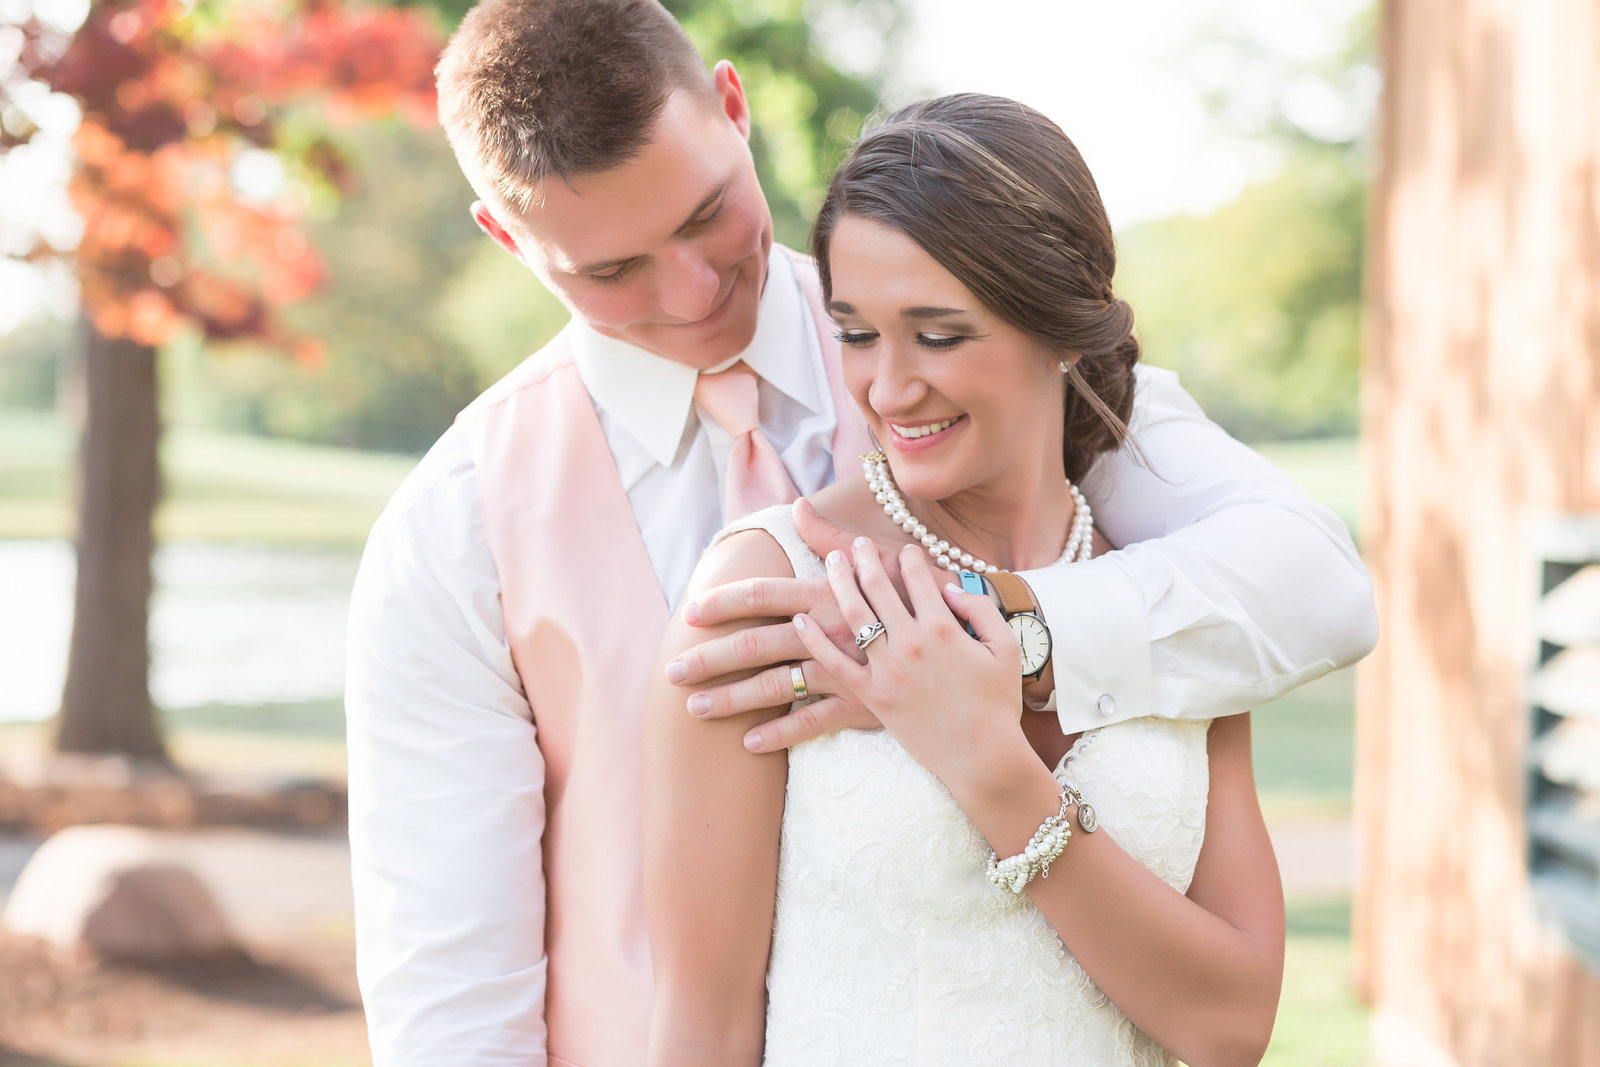 Simply Seeking Photography | Fort Wayne wedding photographer| Bride and groom at Orchard Ridge Country Club wedding